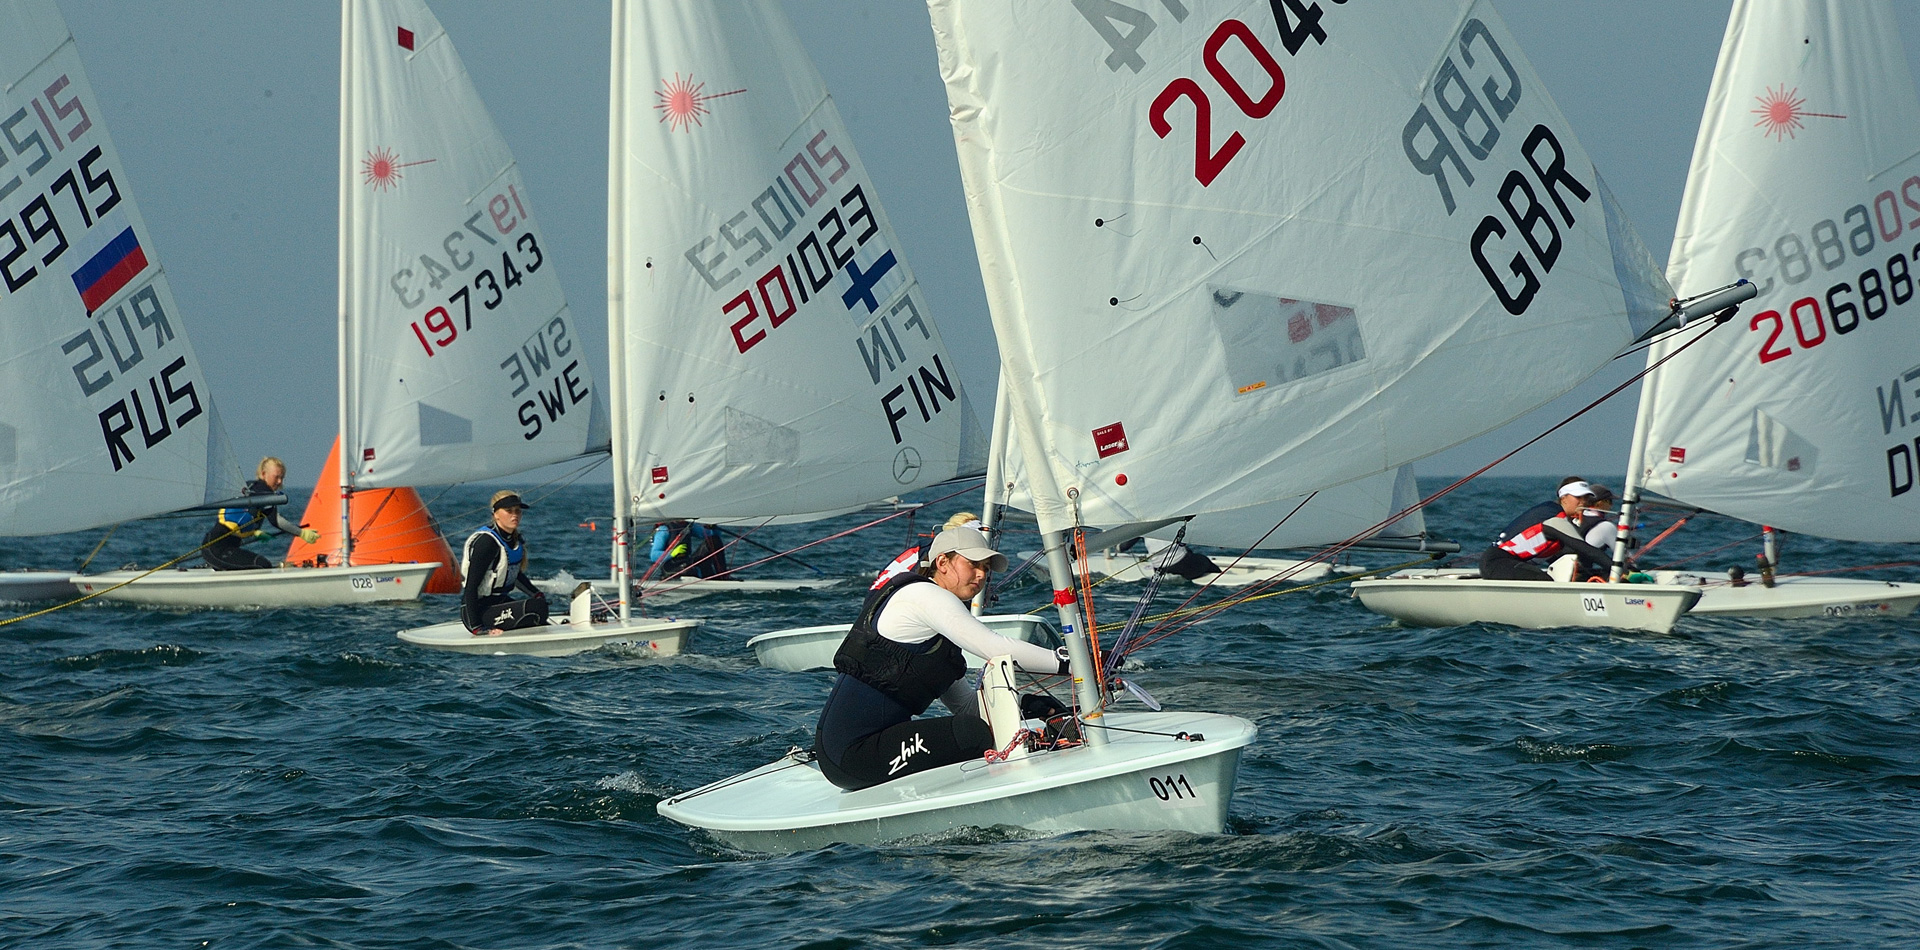 2018 Laser U21 Europeans day 5